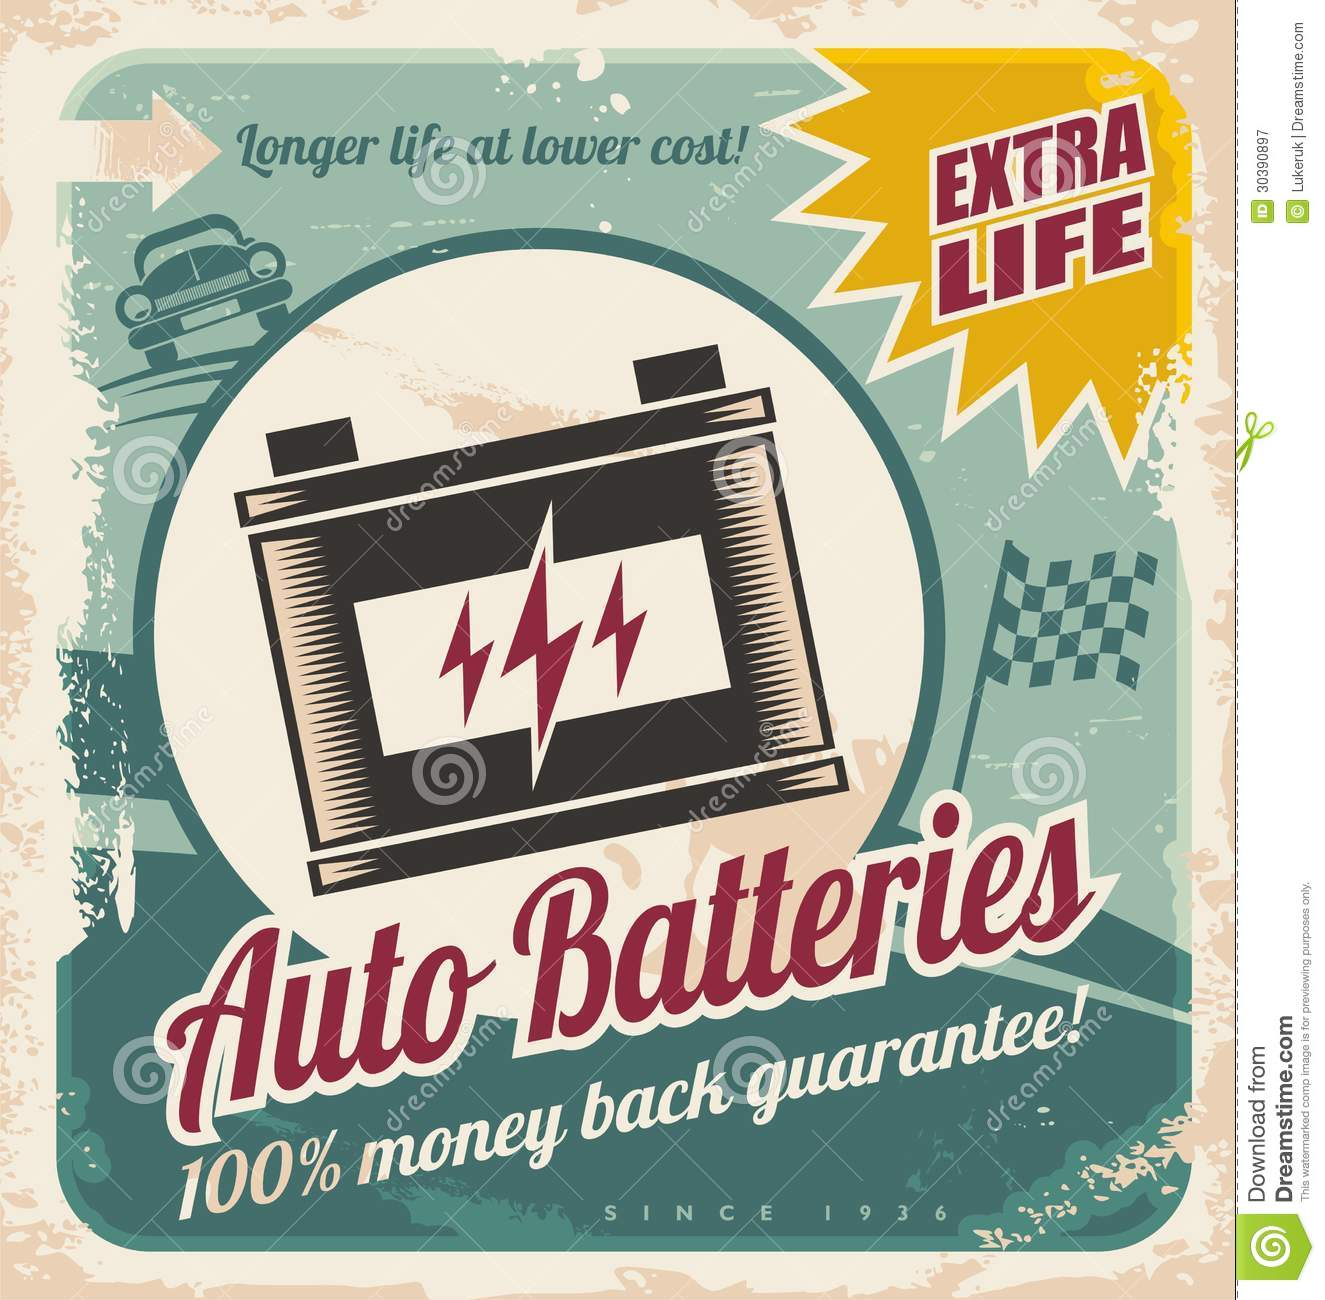 Poster design 50s - Auto Batteries Vintage Poster Design Royalty Free Stock Photography